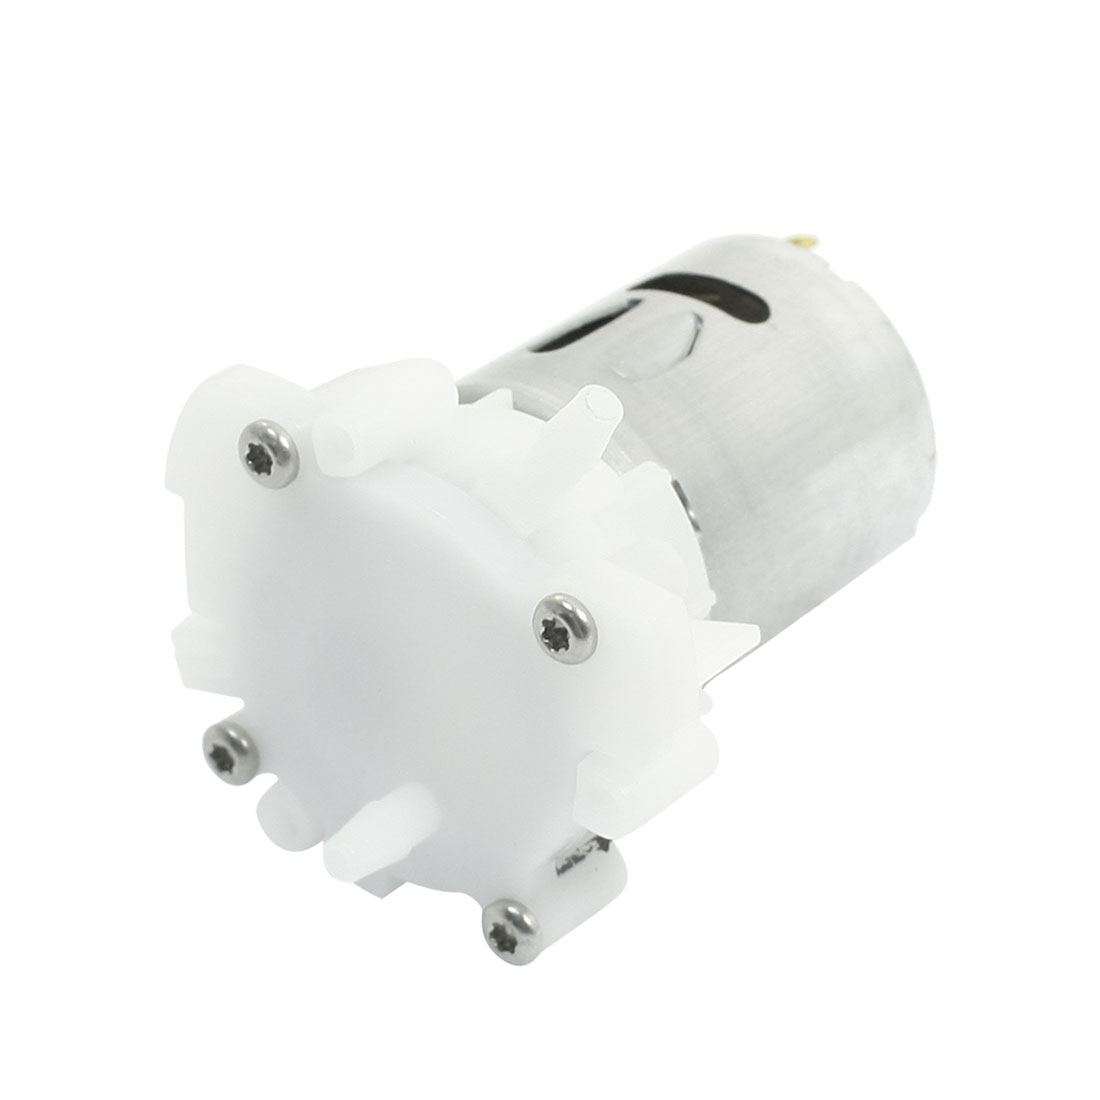 Replacement 2 Pole Mini Micro Pump Motor RS-360 DC3-12V 5000 RPM